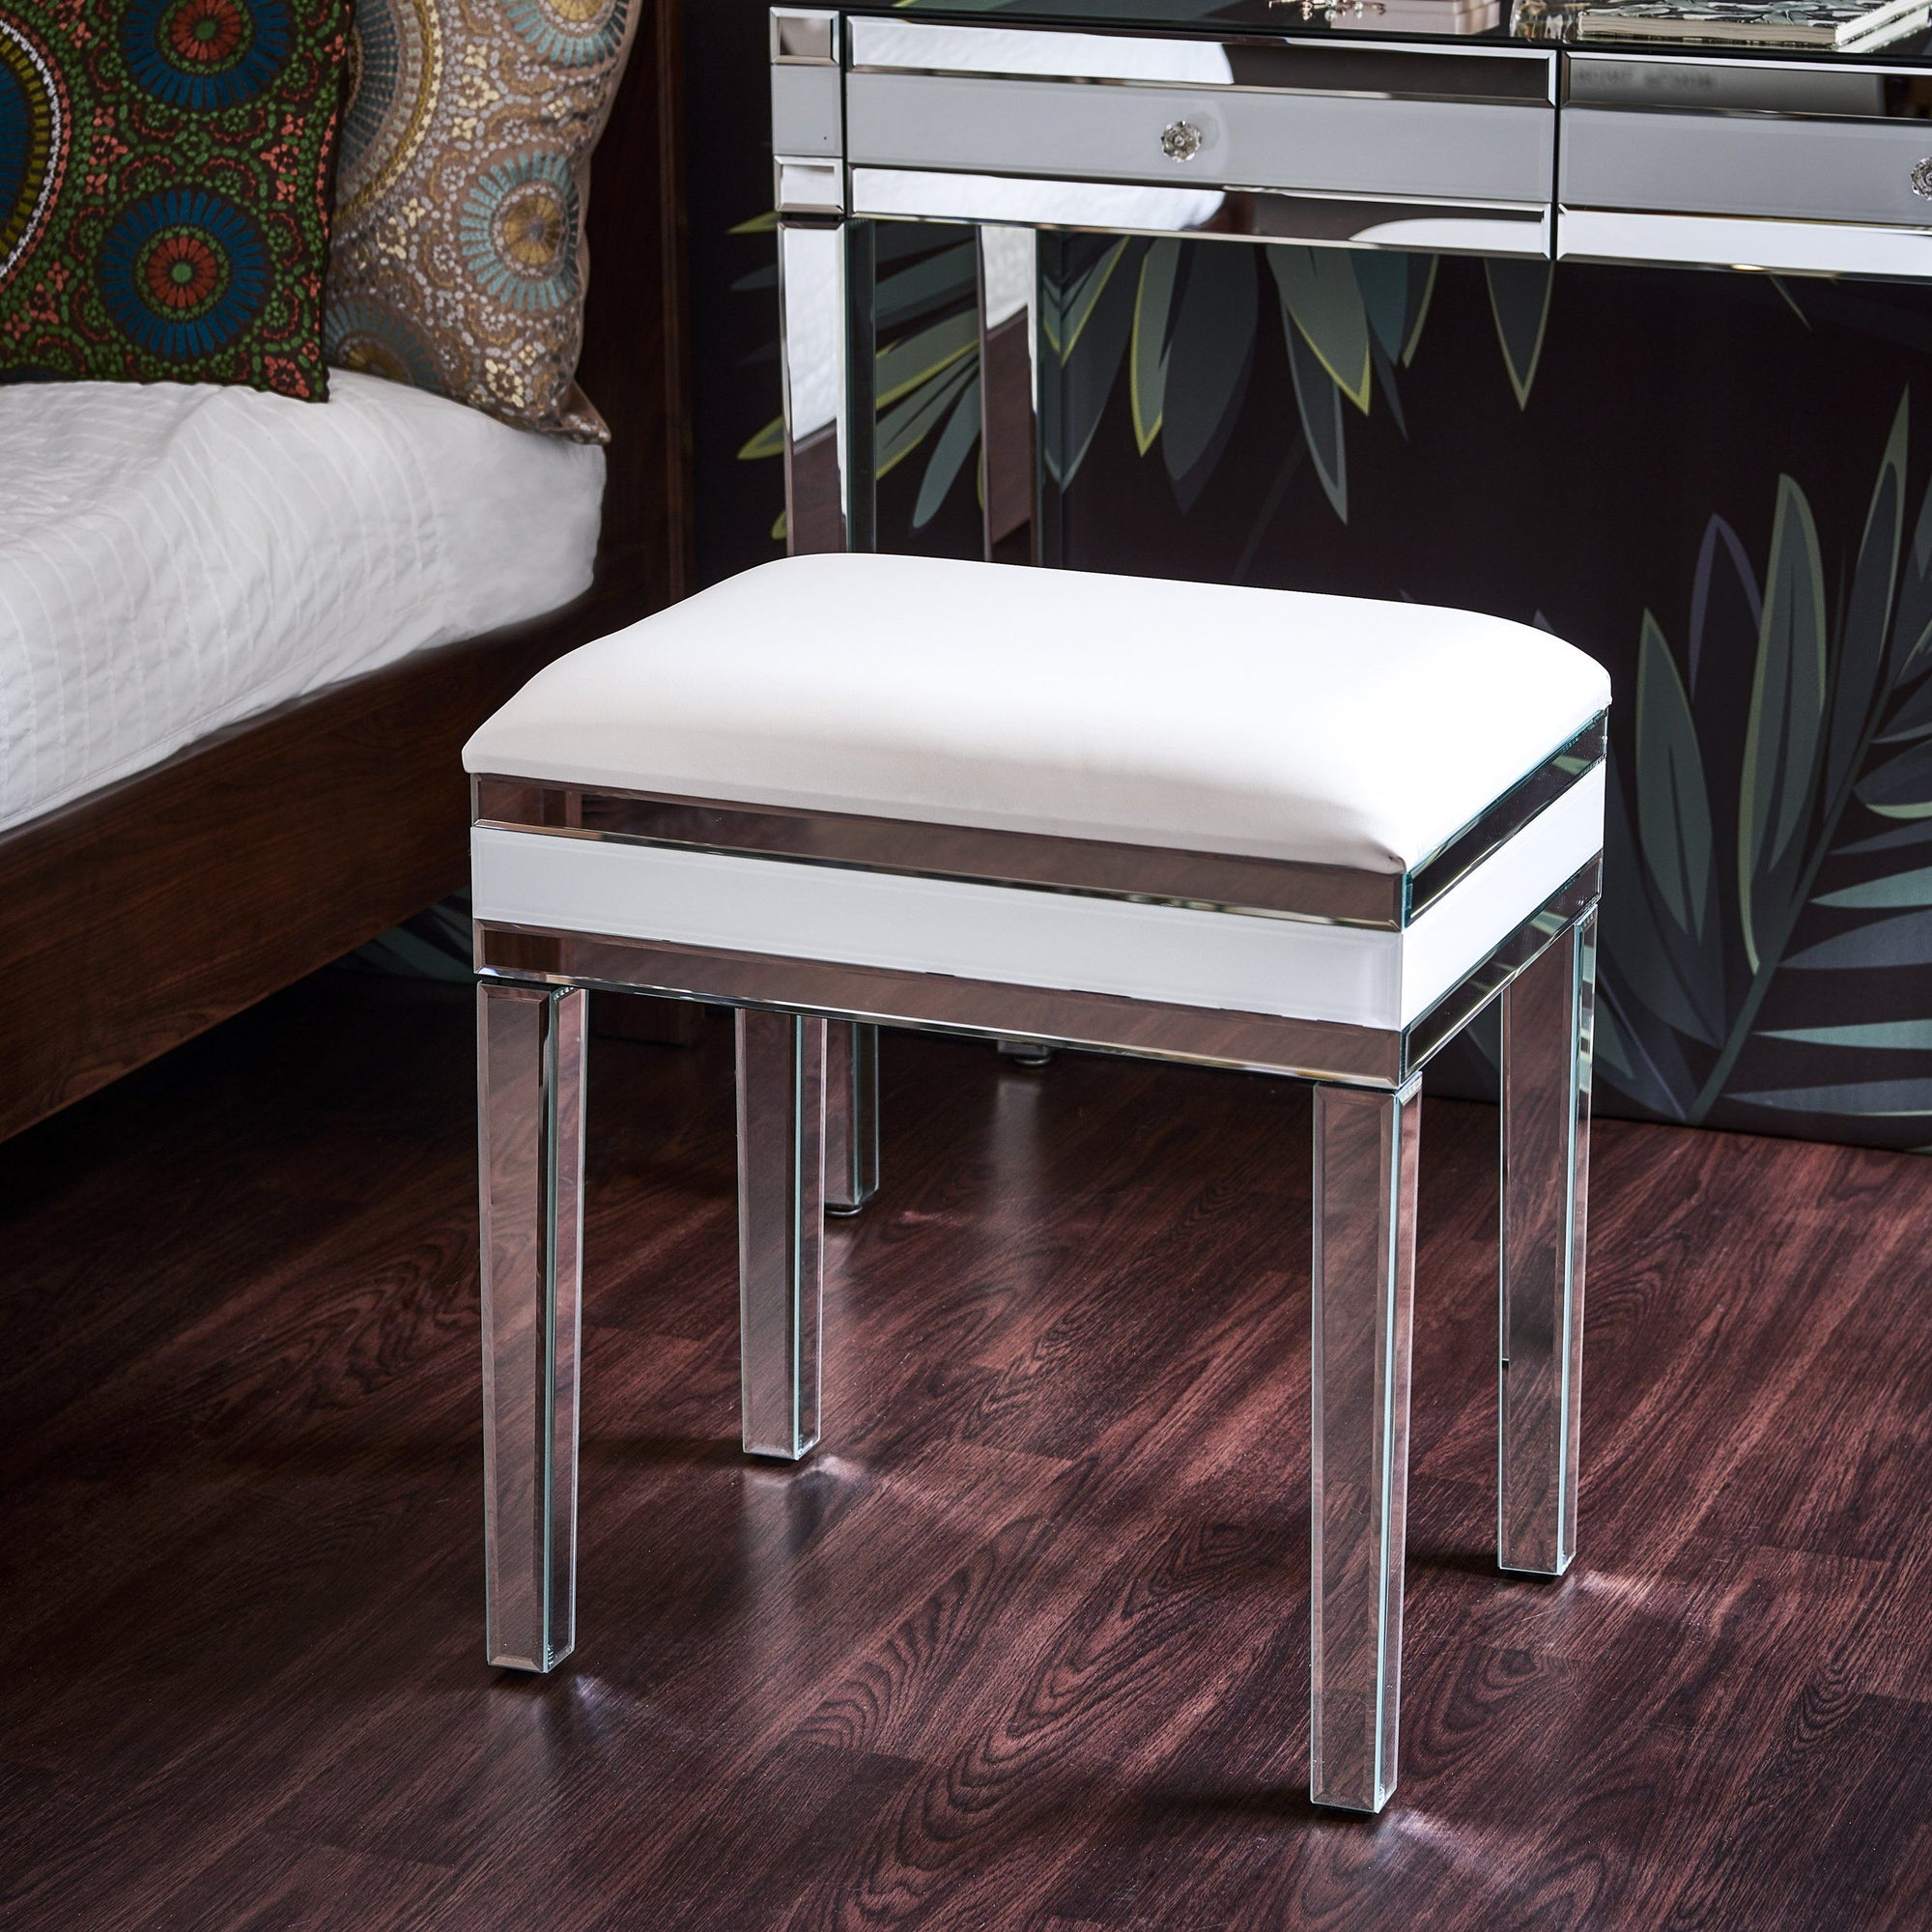 Aleanor Glass Mirrored Cushioned bedroom Stool - Laura James